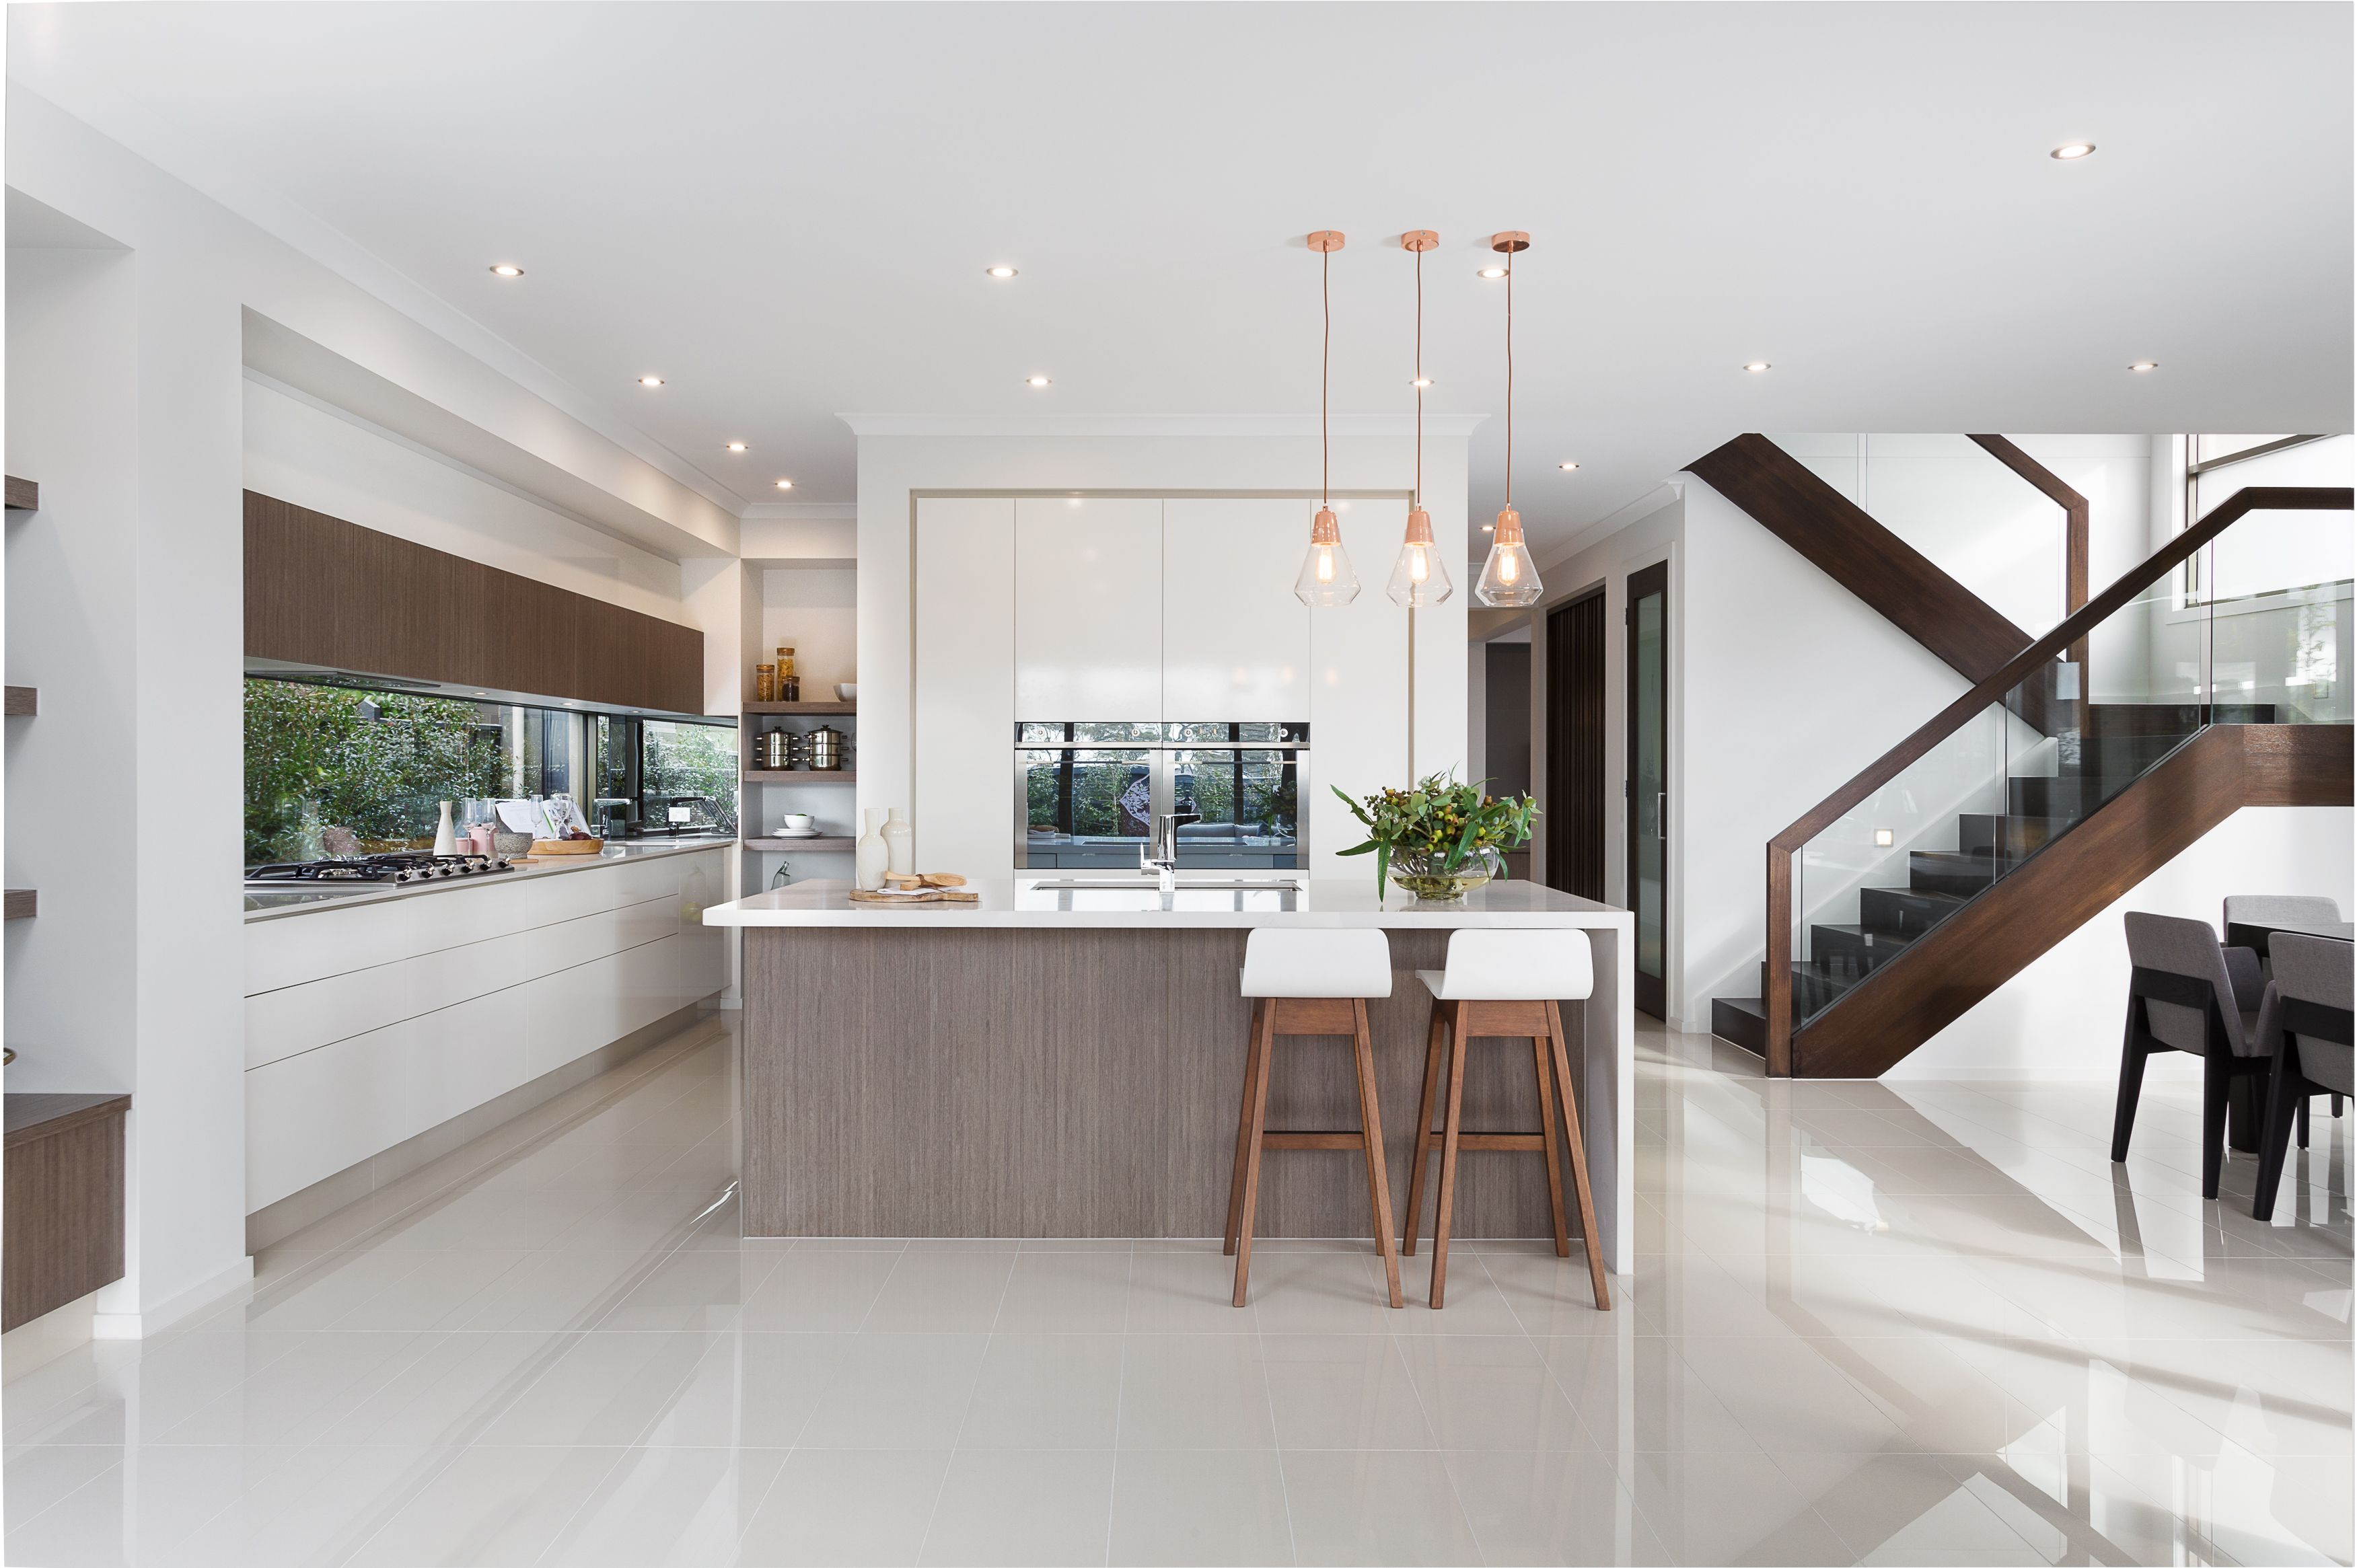 Interior Design Homes Our New Site Featuring The Best In: Pin By Yasmin Caballero On Kitchen